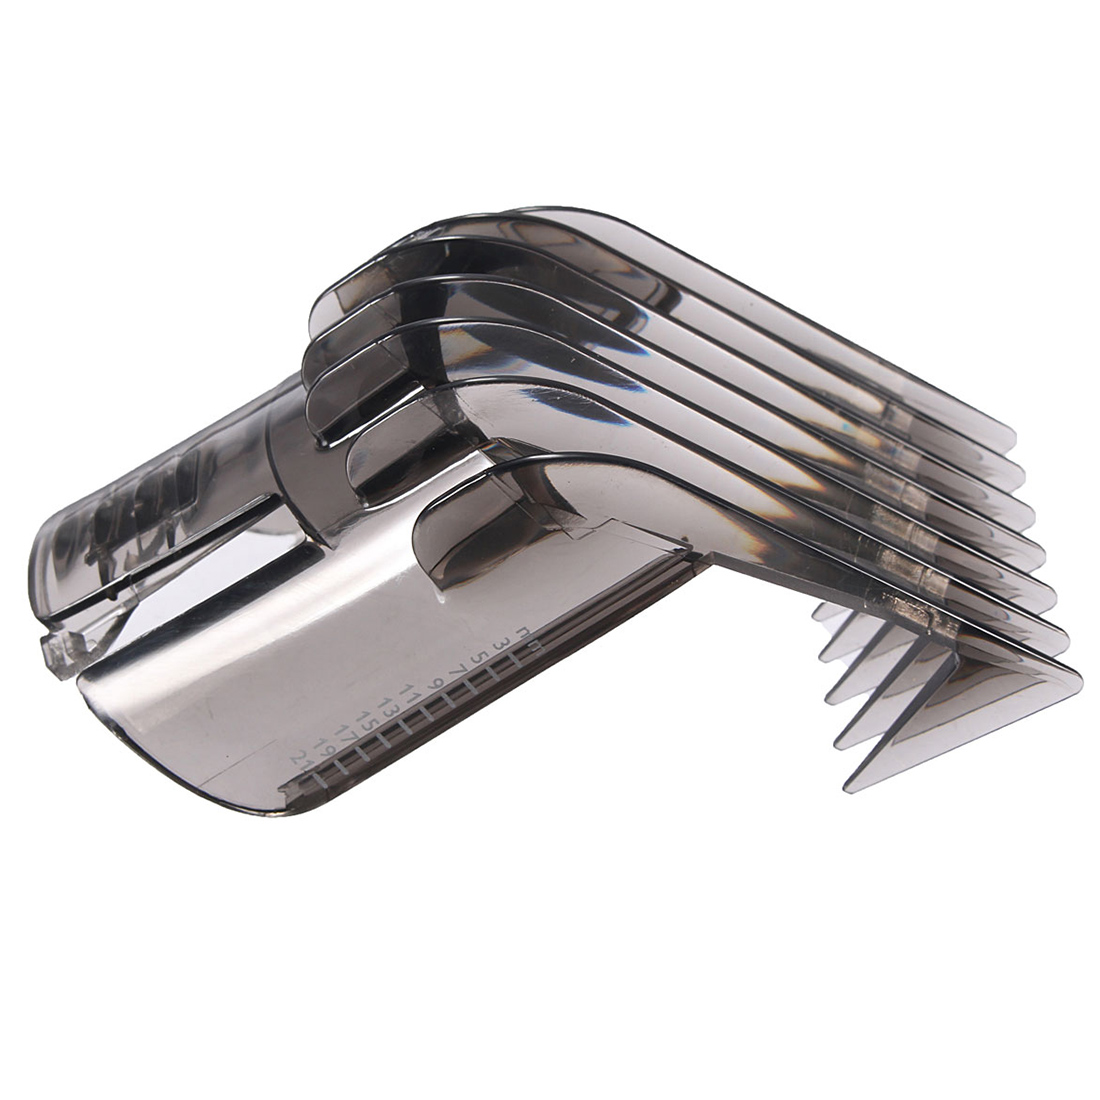 Hair Clippers Beard Trimmer Razor Guide Comb Attachment Tools For Philips QC5130 / 05/15/20/25/35 3-21mm Adjustable Profession